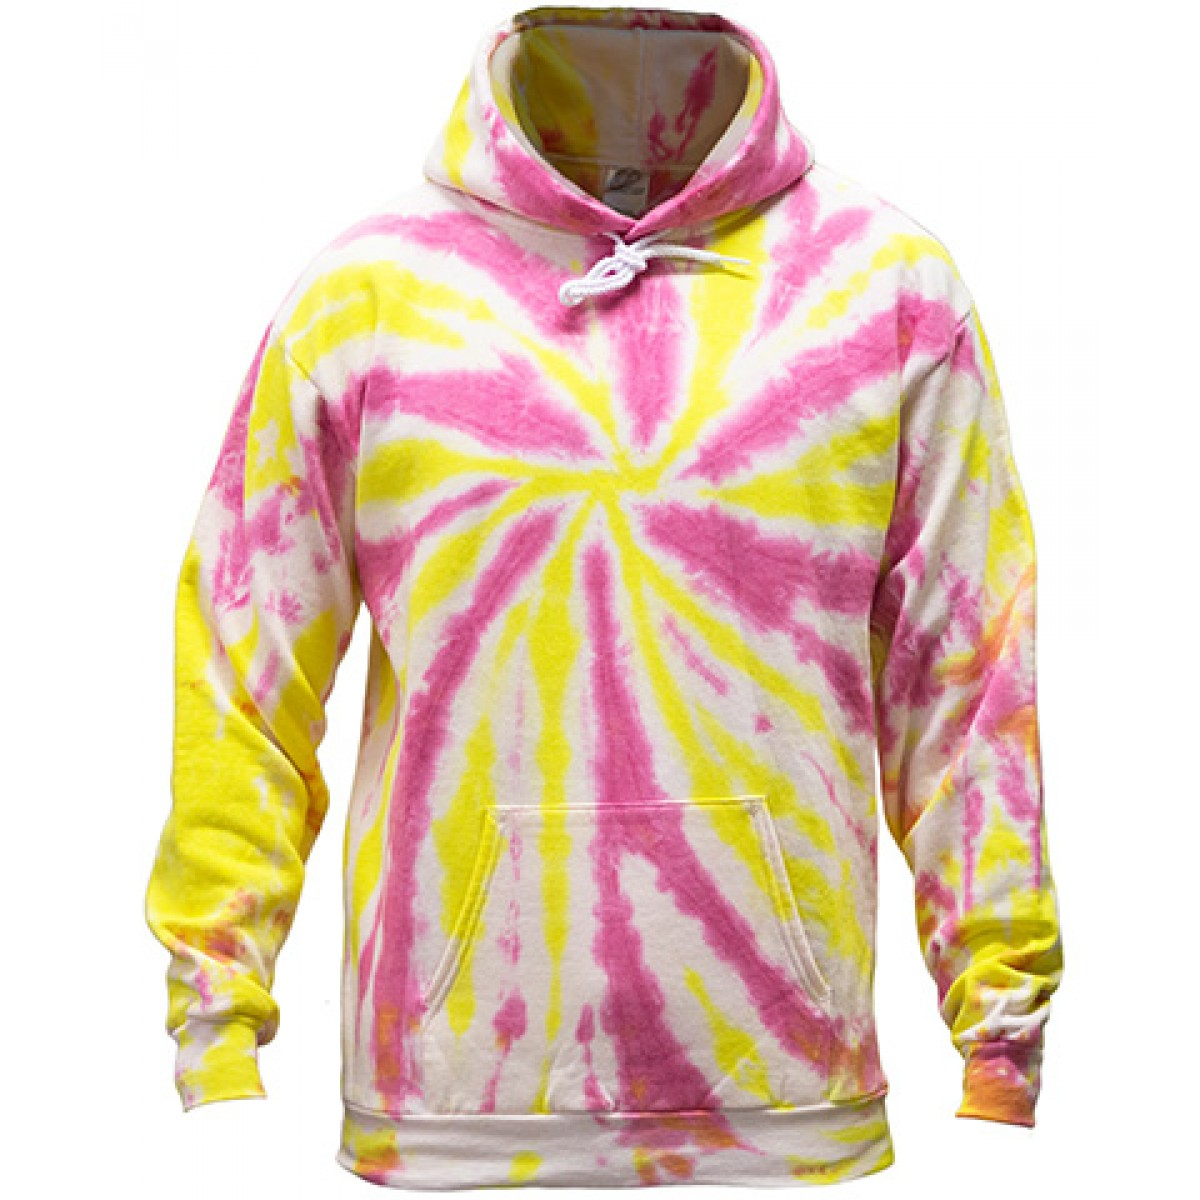 Tie-Dye Pullover Hooded Sweatshirt-Pink/Yellow-L